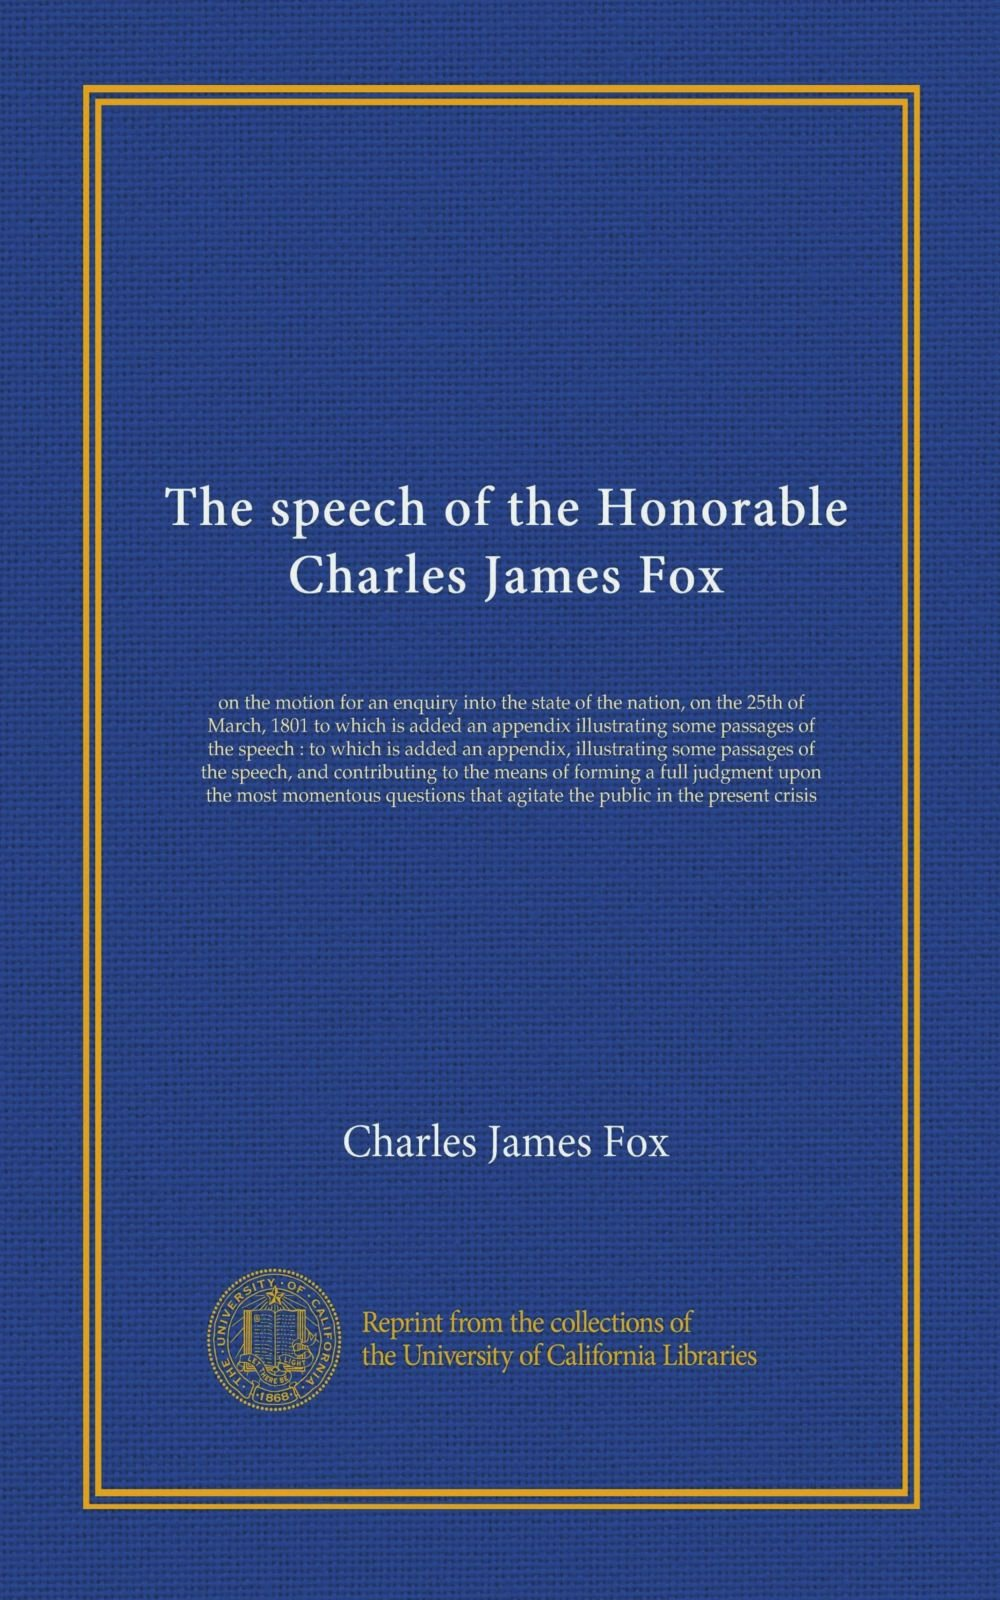 The speech of the Honorable Charles James Fox: on the motion for an enquiry into the state of the nation, on the 25th of March, 1801 to which is added ... passages of the speech, and contributing... pdf